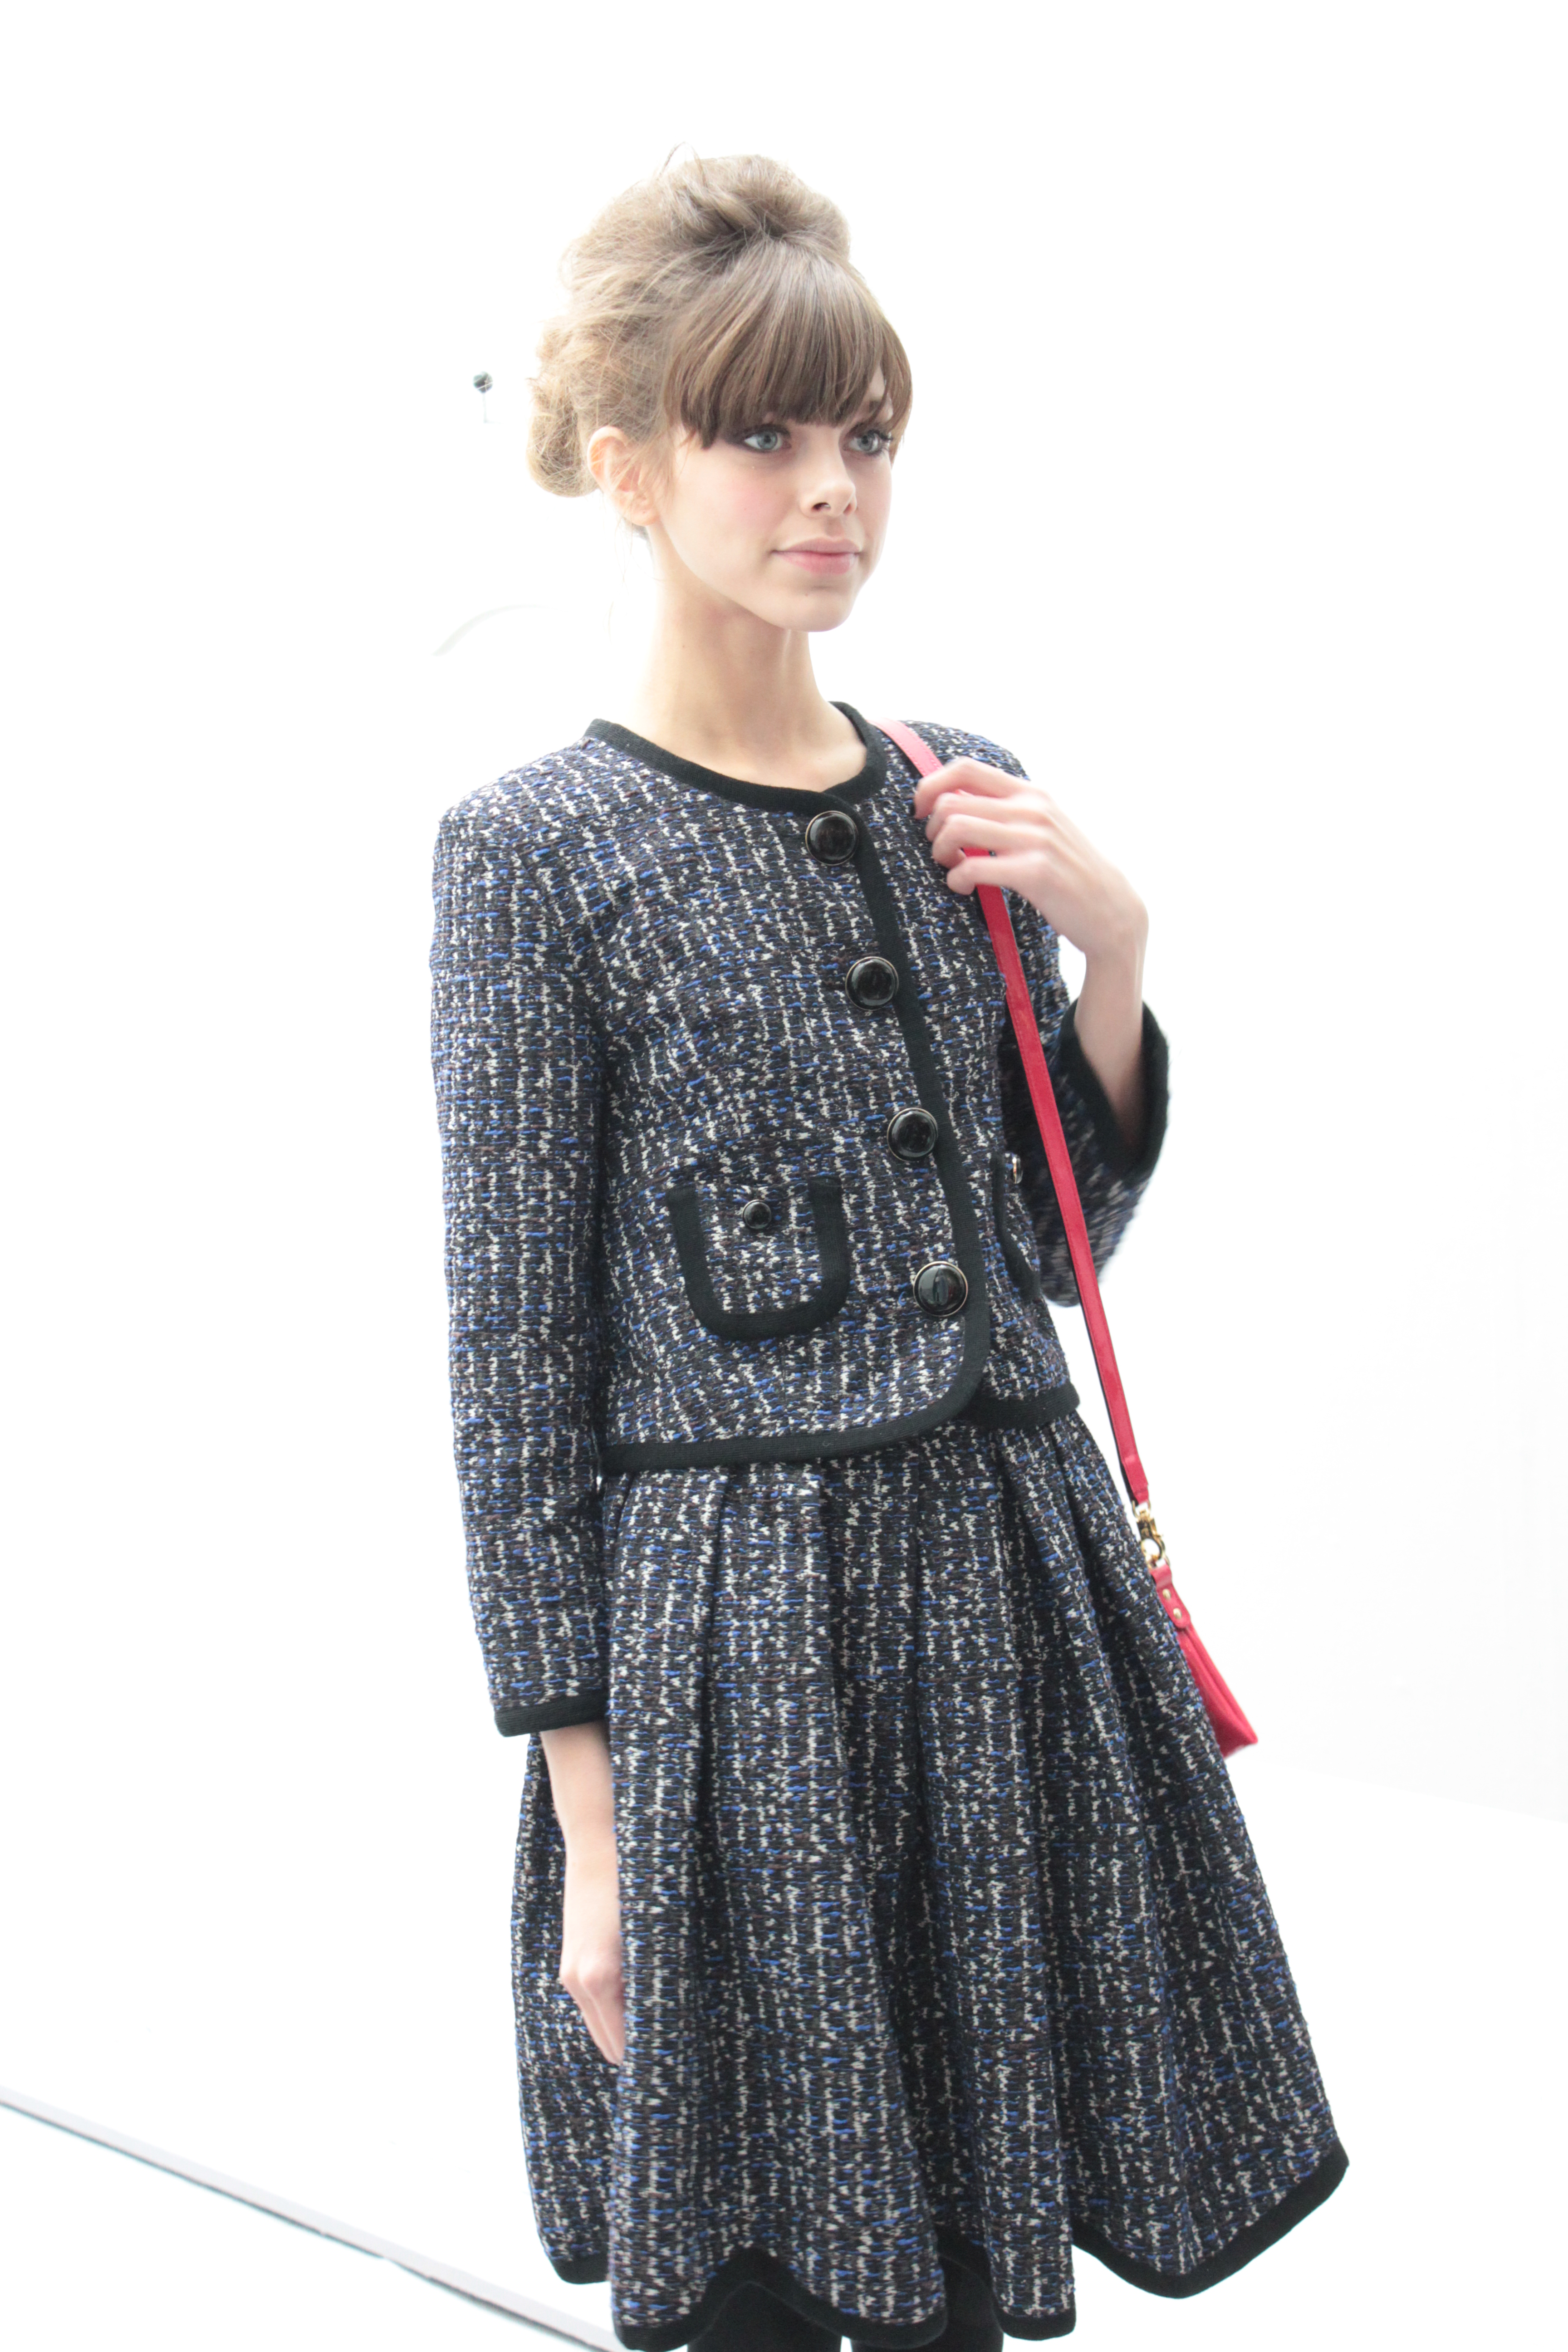 Orla Kiely autumn/winter 13